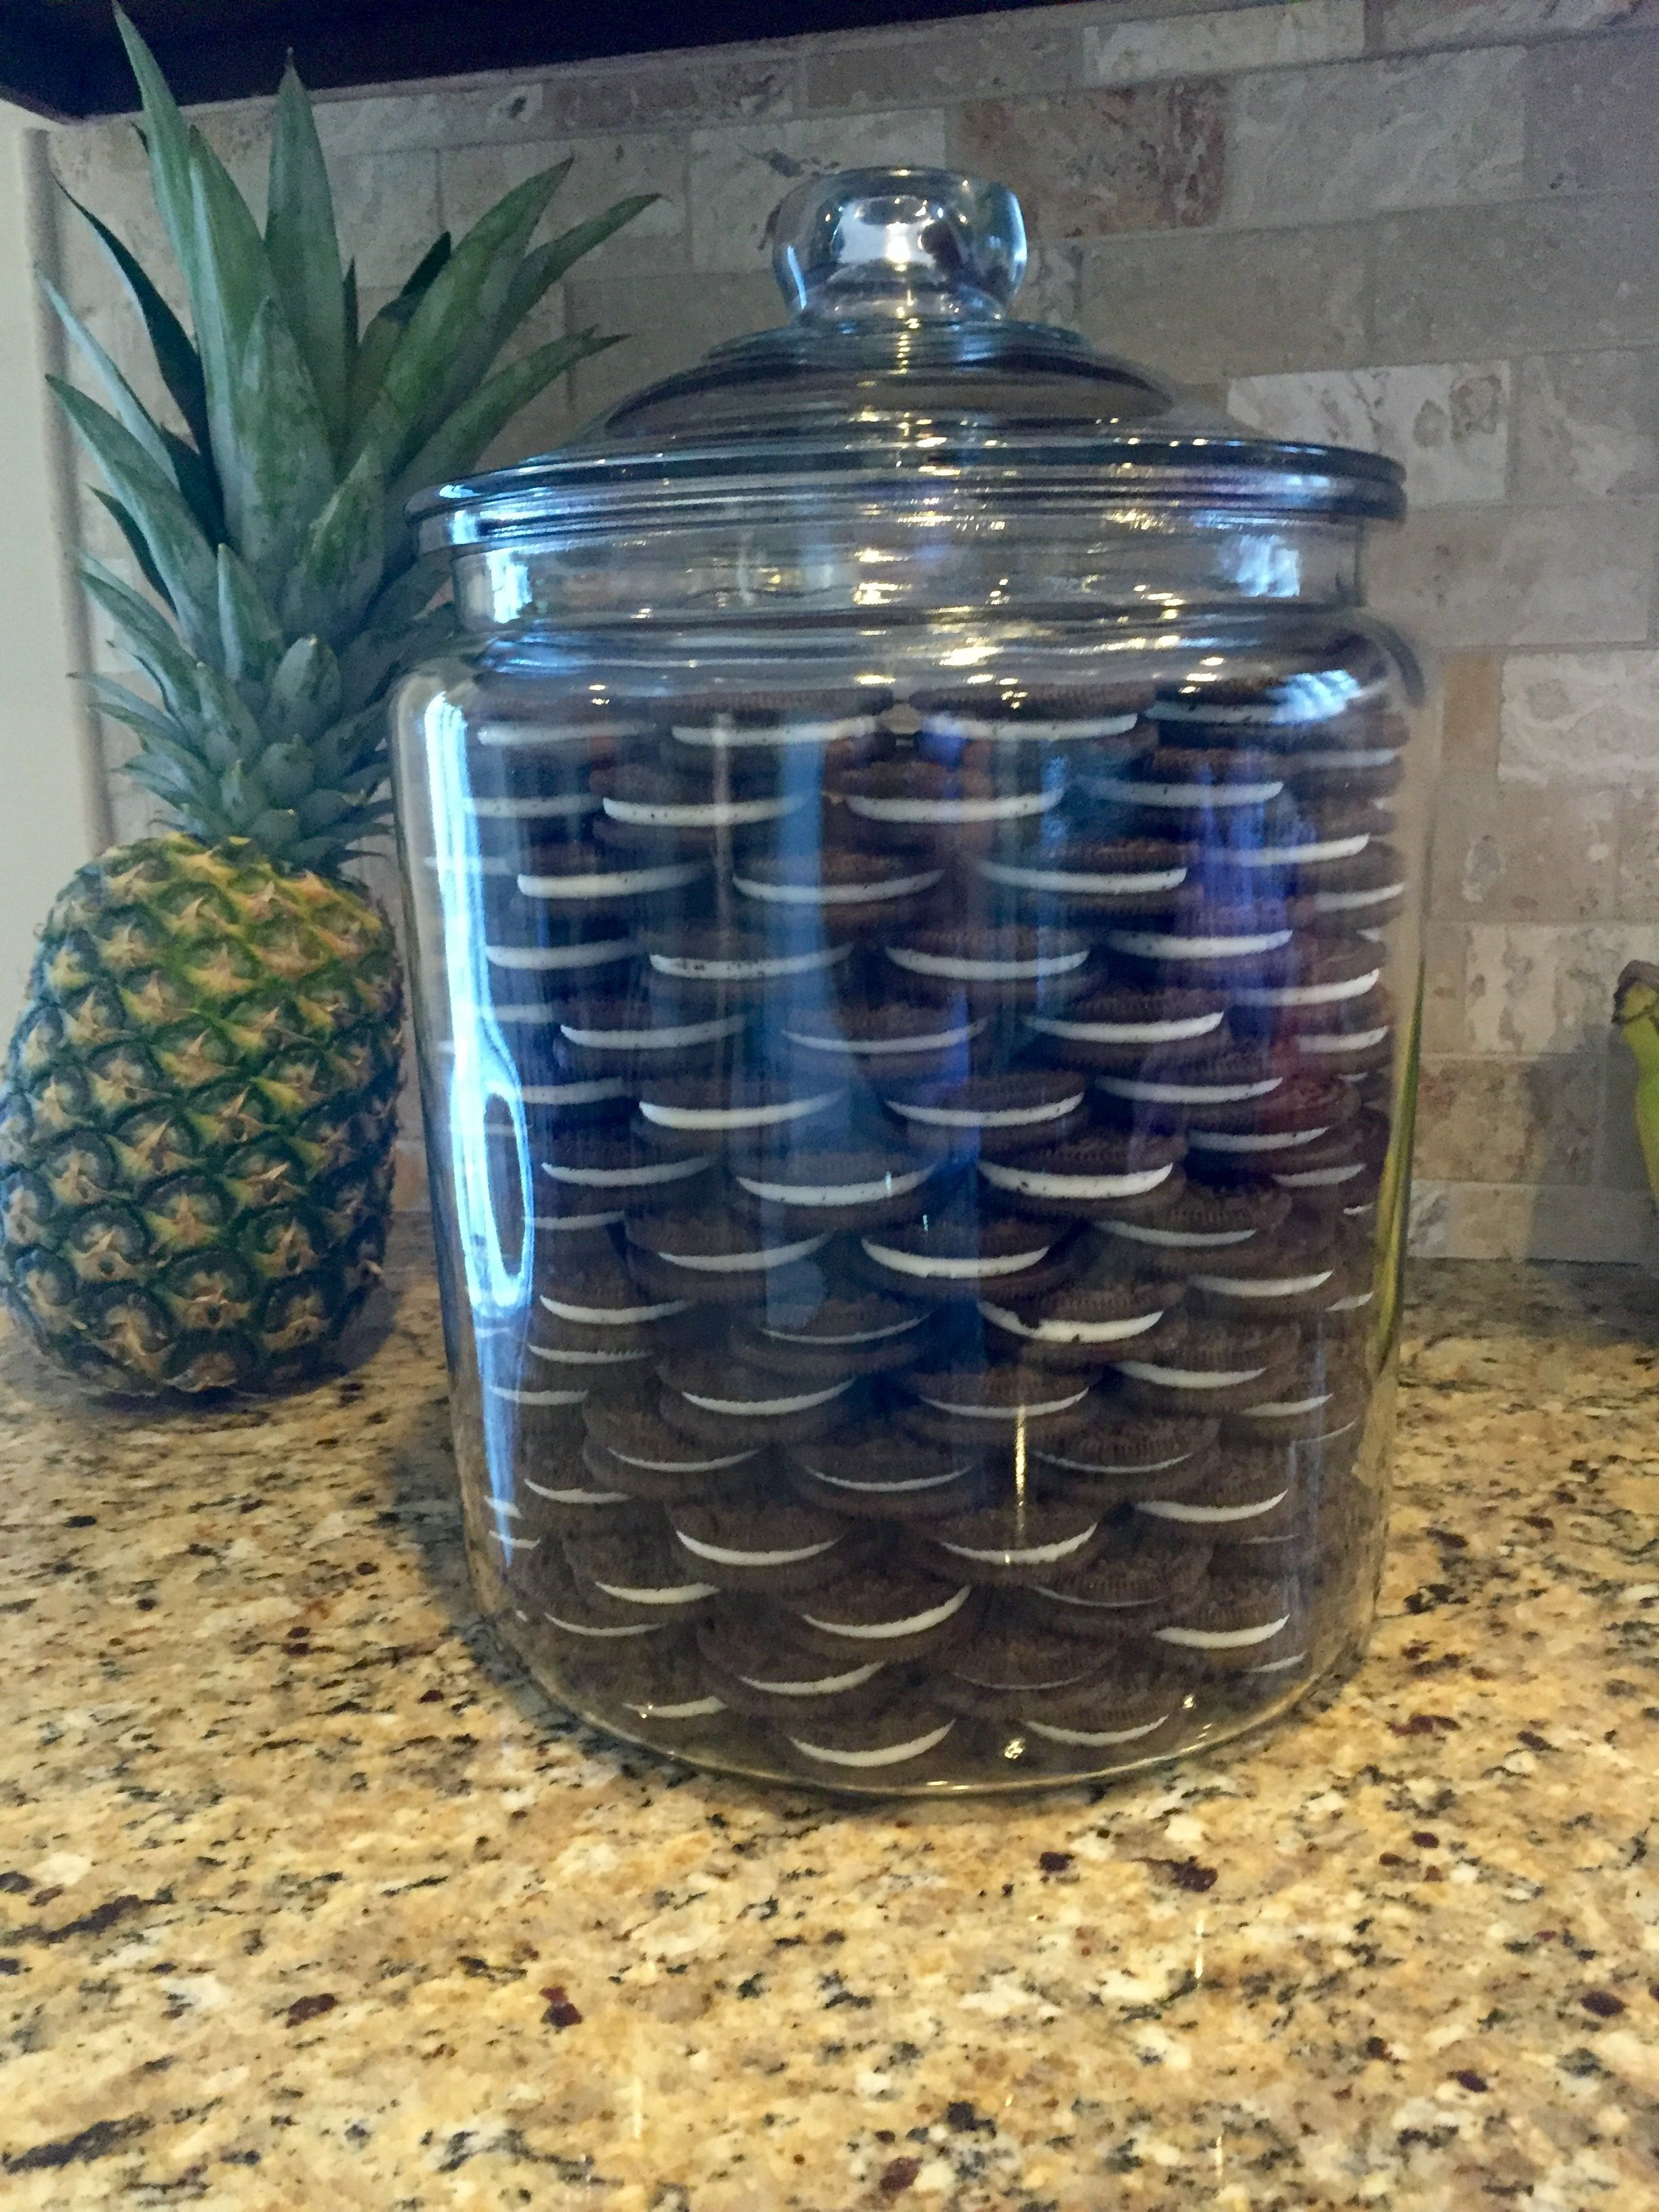 Oreos in a Jar inspired by Khloé Kardashian. Just pick up a Heritage Hill Jar